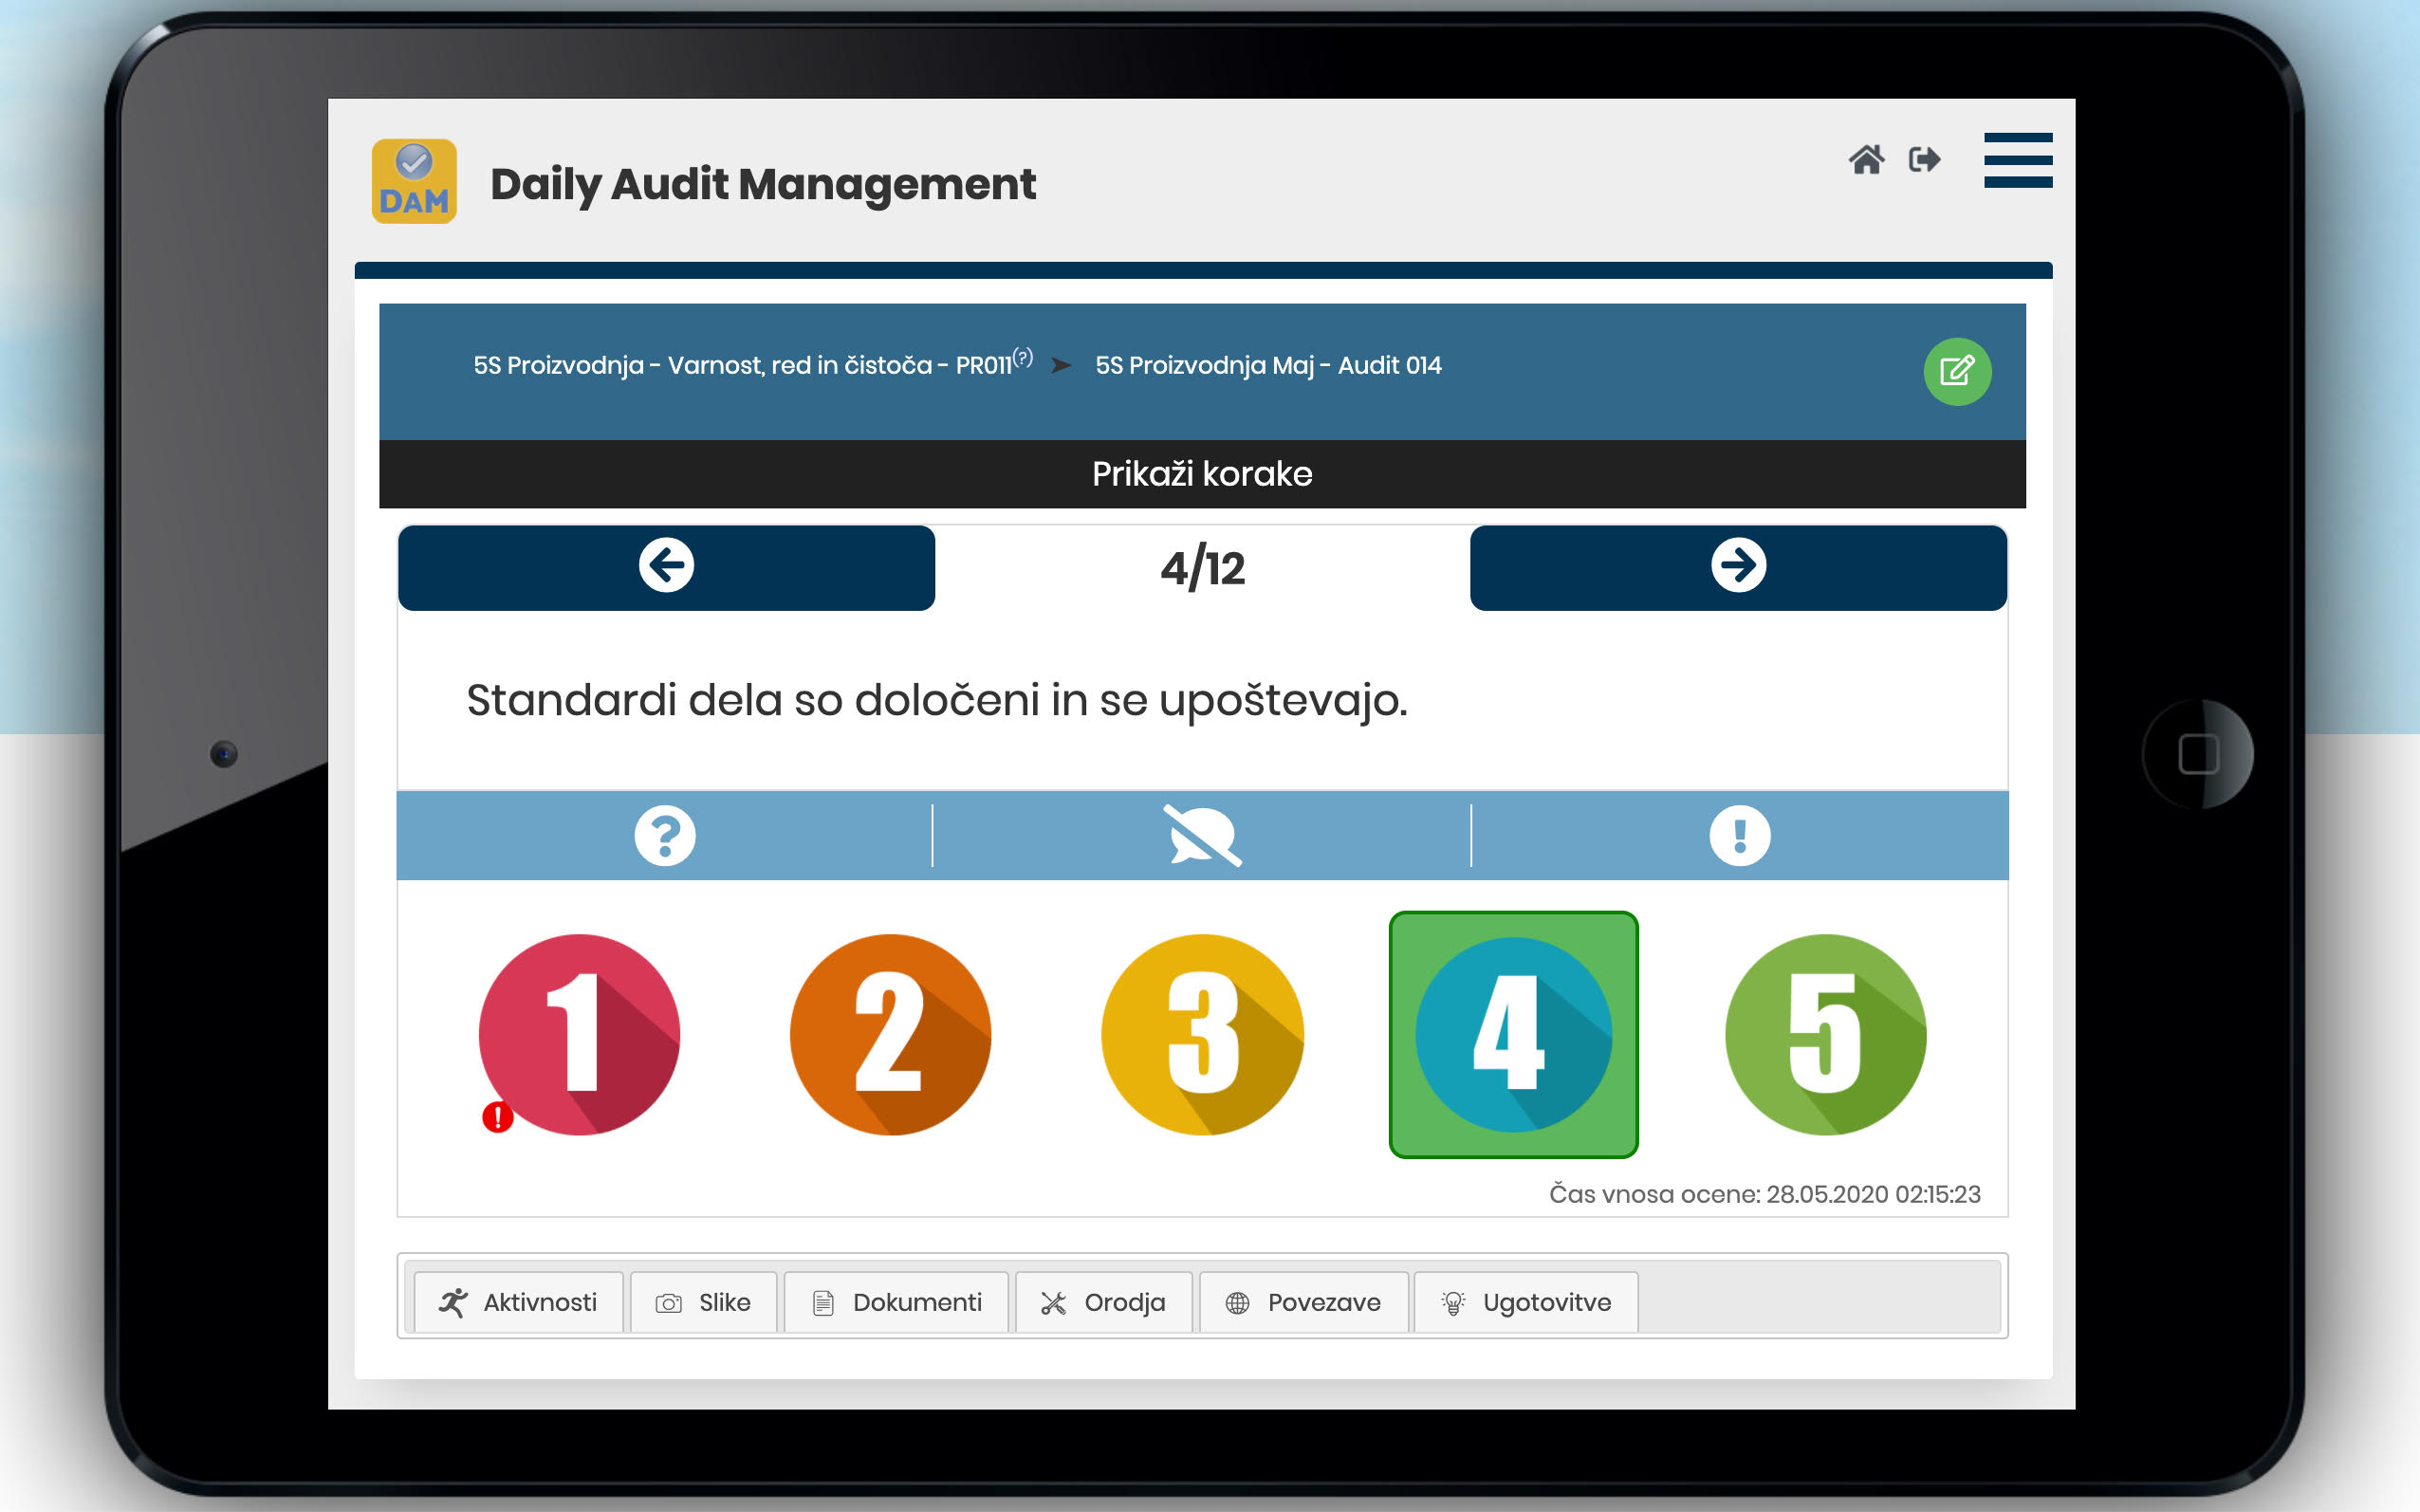 Prikaz orodja DAM – Daily Audit Management za digitalno izvajanje auditov